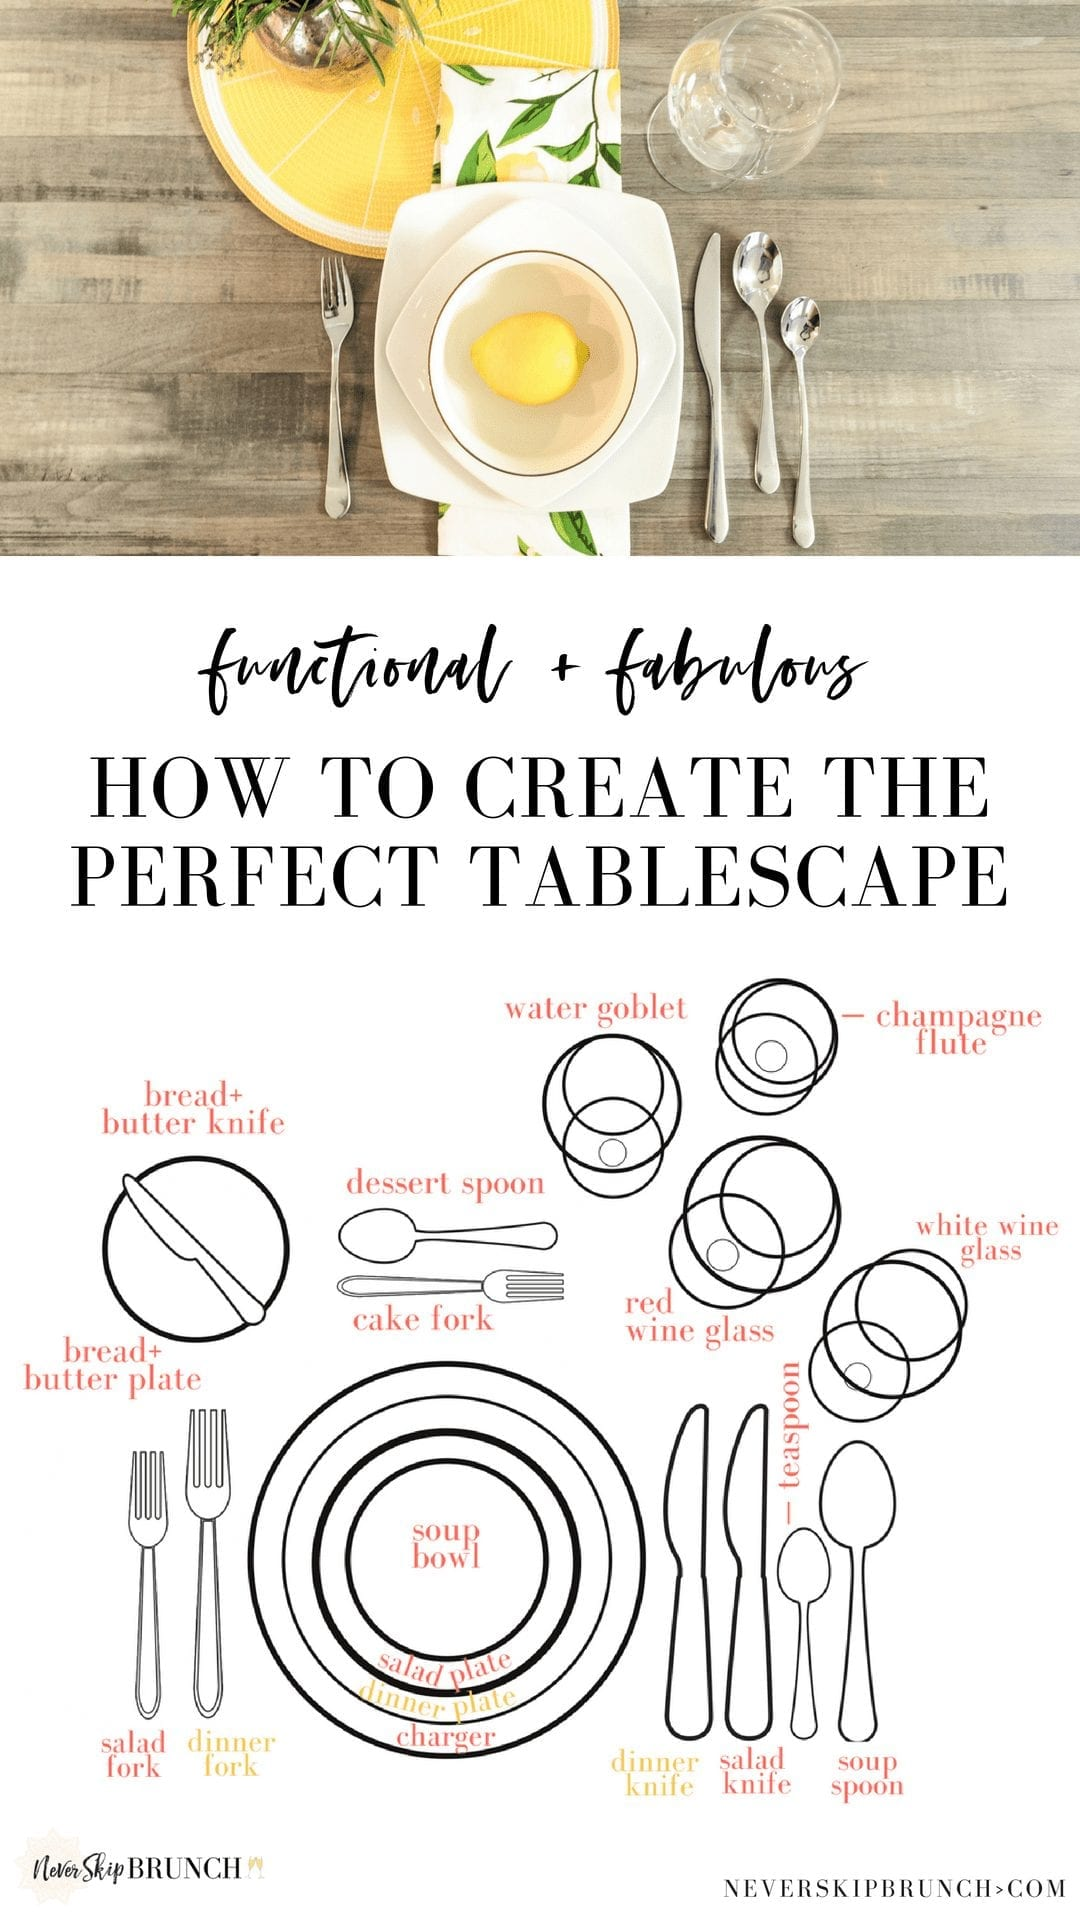 This tablescape checklist will give you tablescapes ideas for how to create dinner party table settings | Never Skip Brunch #NSBhome #decor